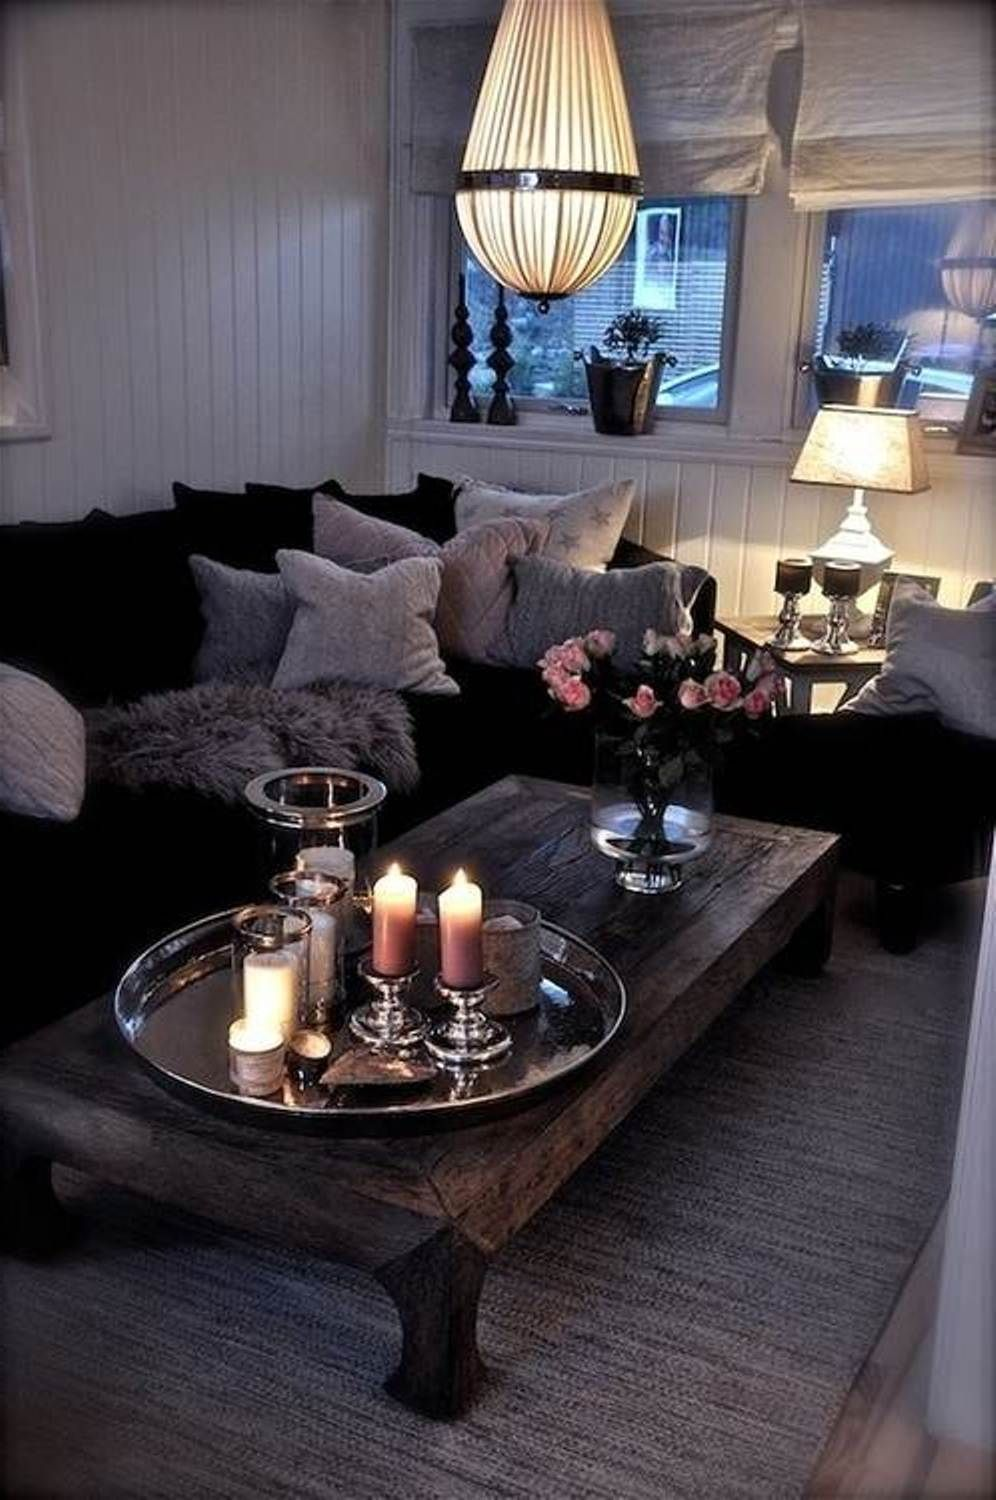 Dark and romantic rooms